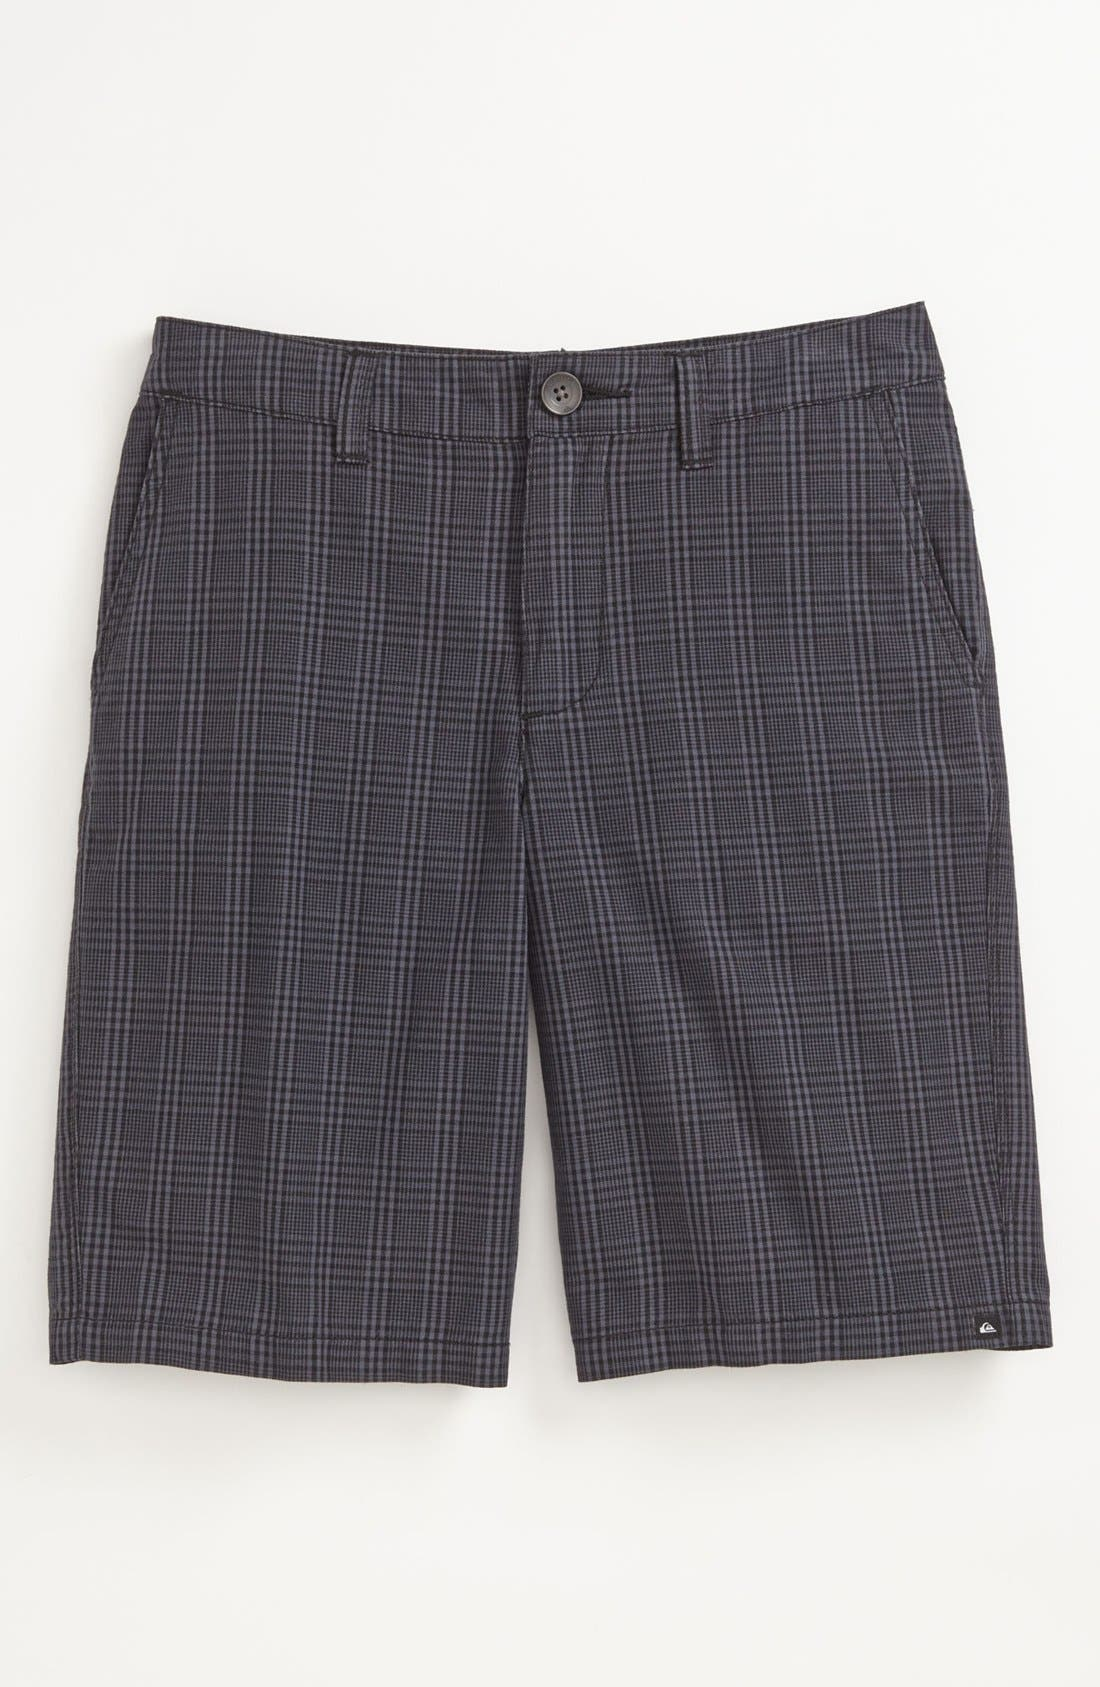 Main Image - Quiksilver 'Agenda Suiting' Plaid Shorts (Big Boys)